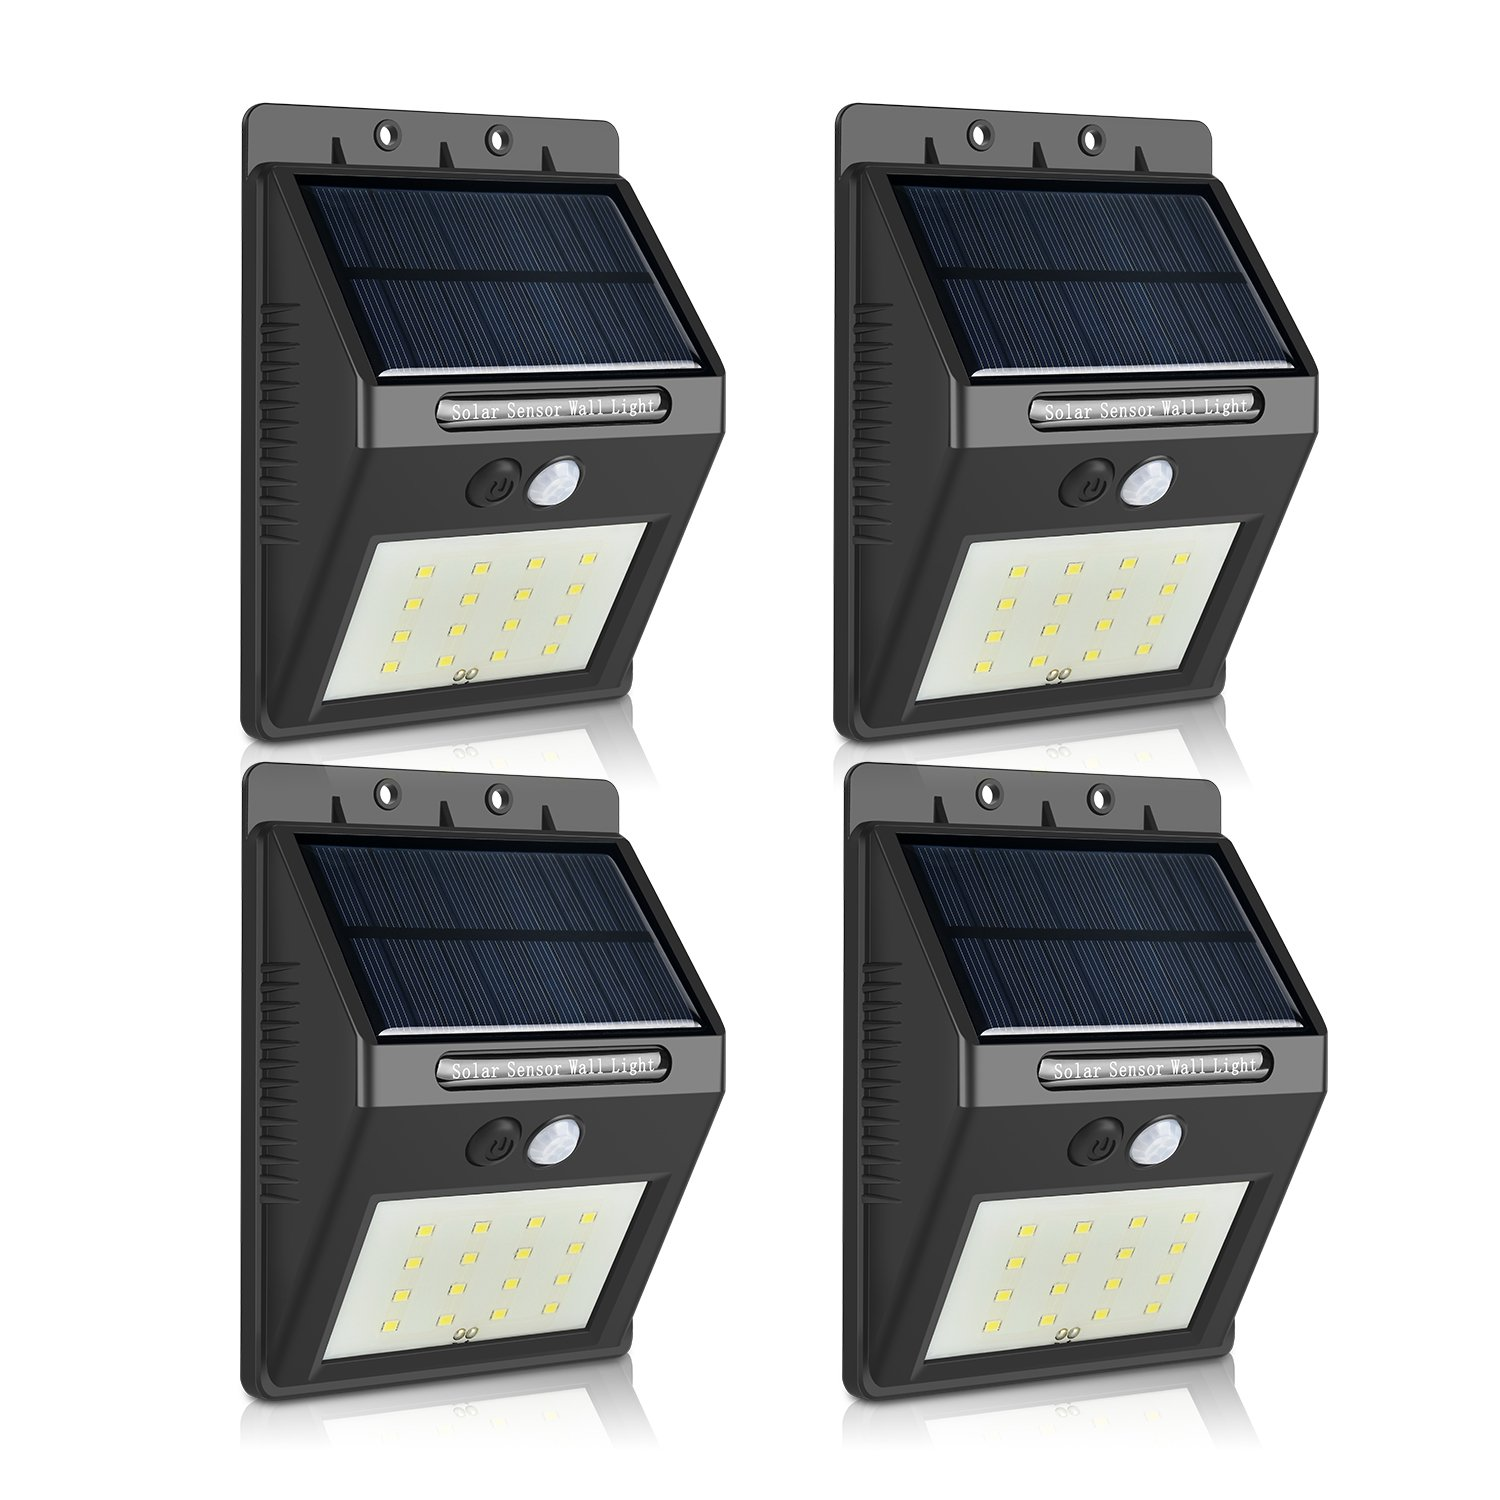 Outdoor Solar Security Lights 16LED Black Wireless Waterproof Motion Sensor Wall light Super Bright Night Lighting for Garden Outside Wall Pathway Yard Patio Driveway(4-Pack)